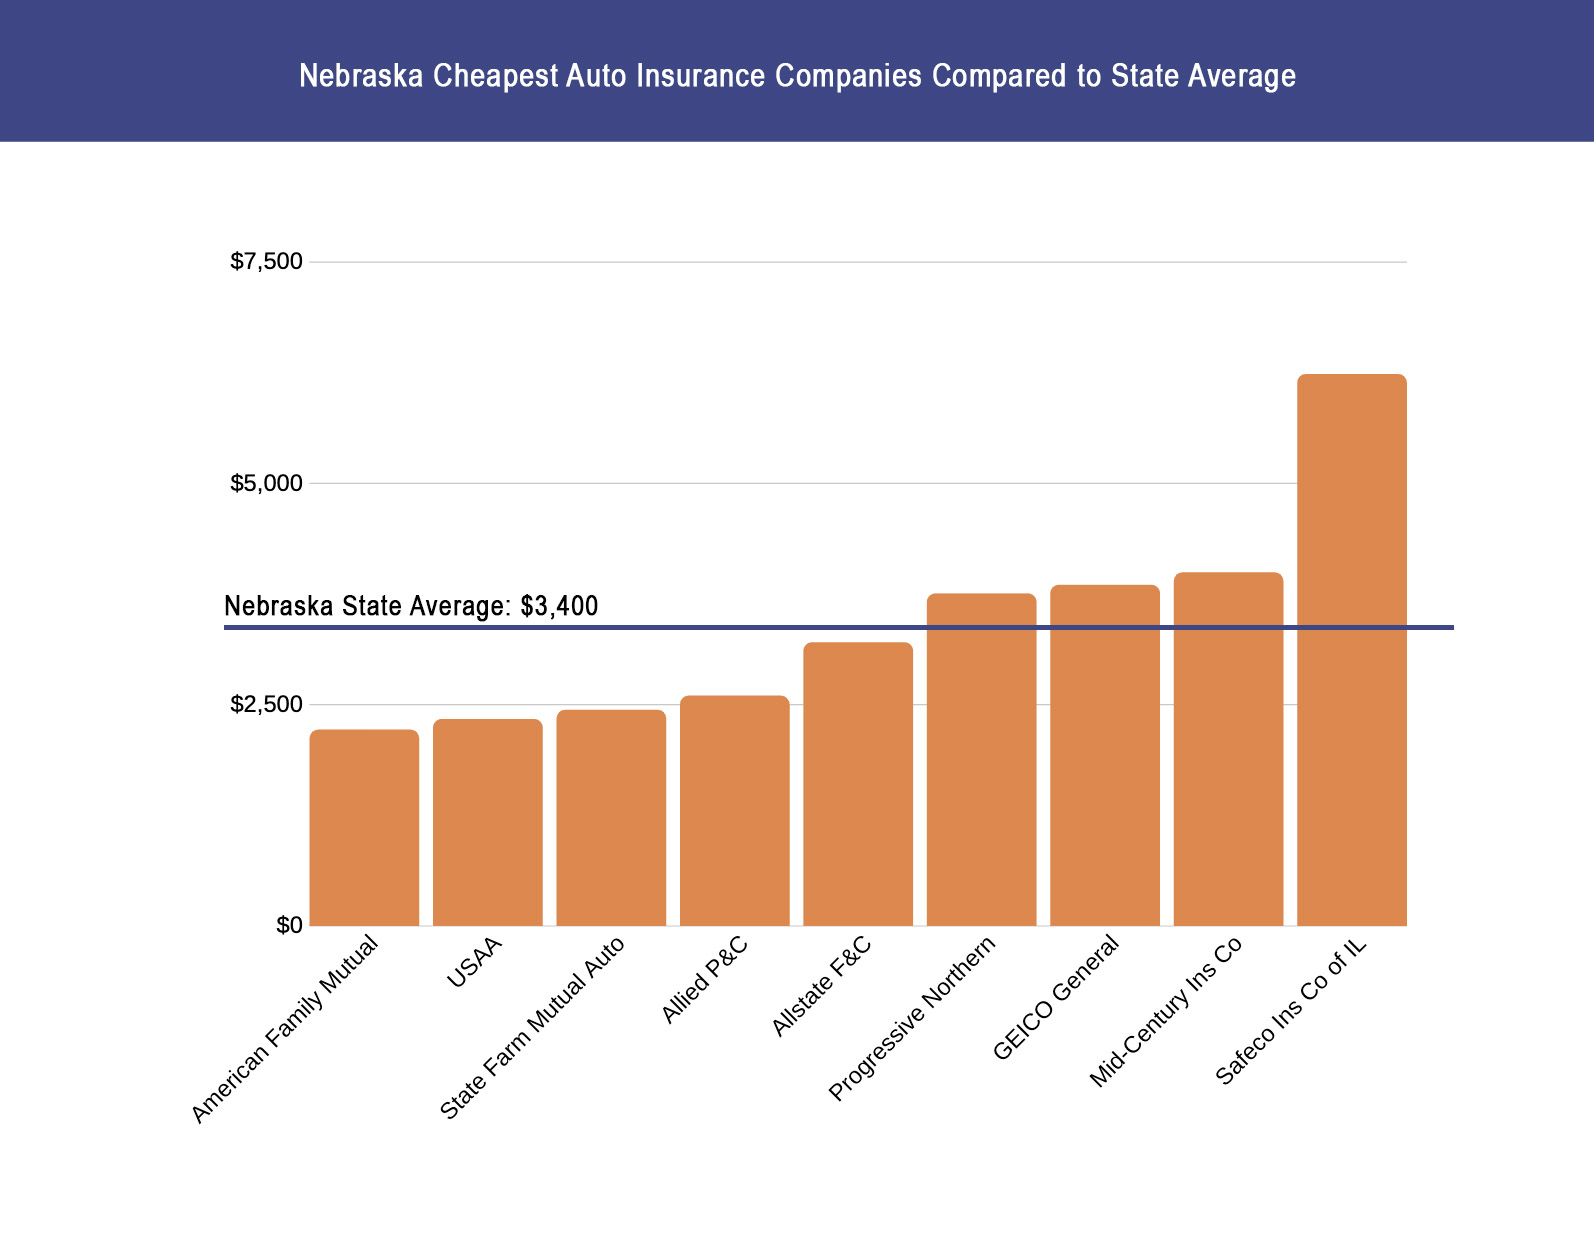 Nebraska Cheapest Auto Insurance Companies Compared to State Average